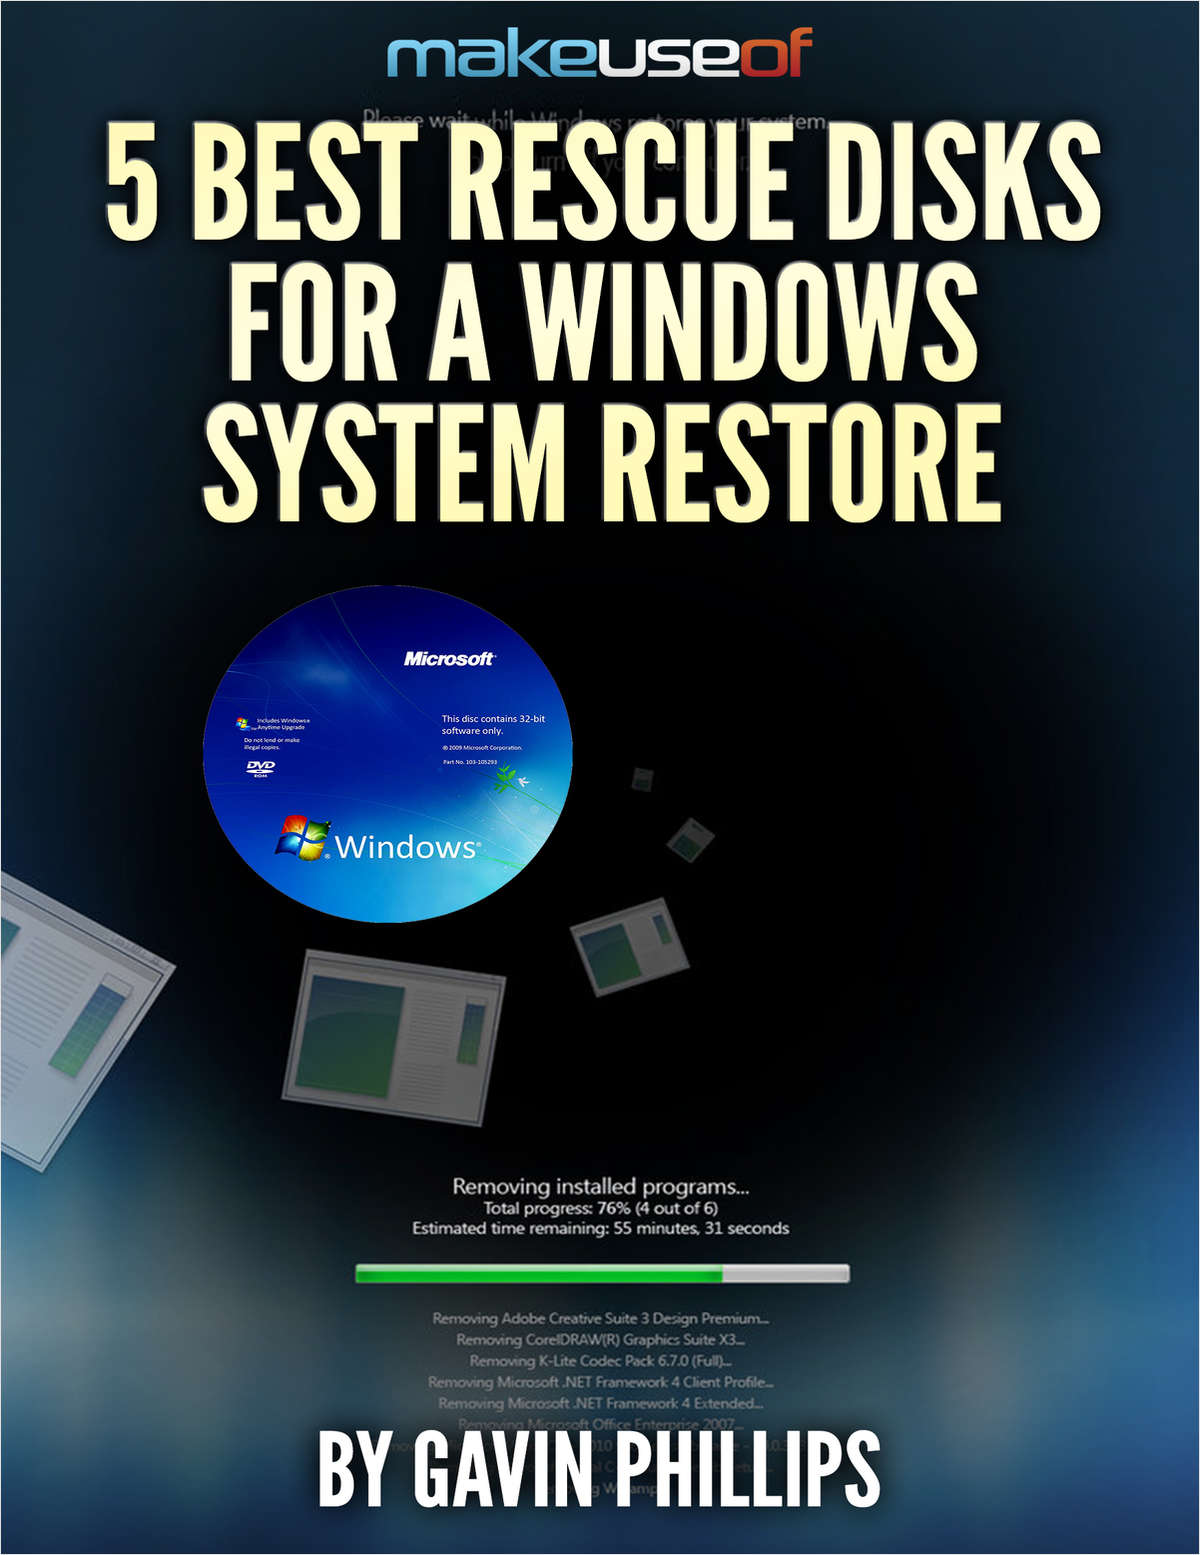 5 Best Rescue Disks For A Windows System Restore